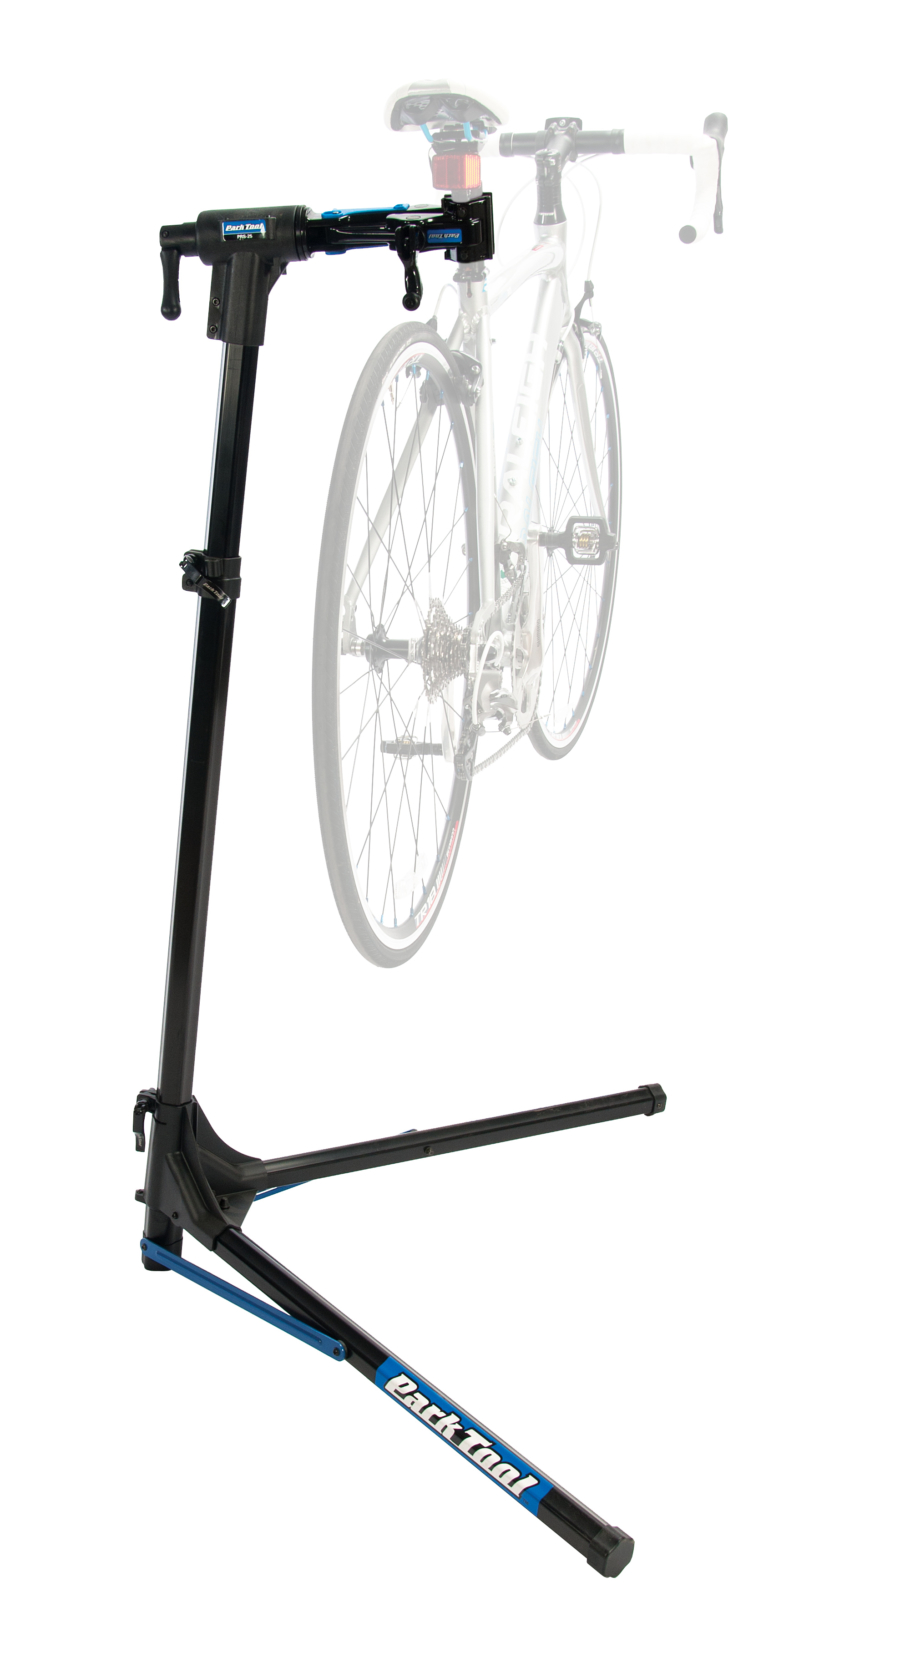 The Park Tool PRS-25 Team Issue Repair Stand with bike mounted, enlarged